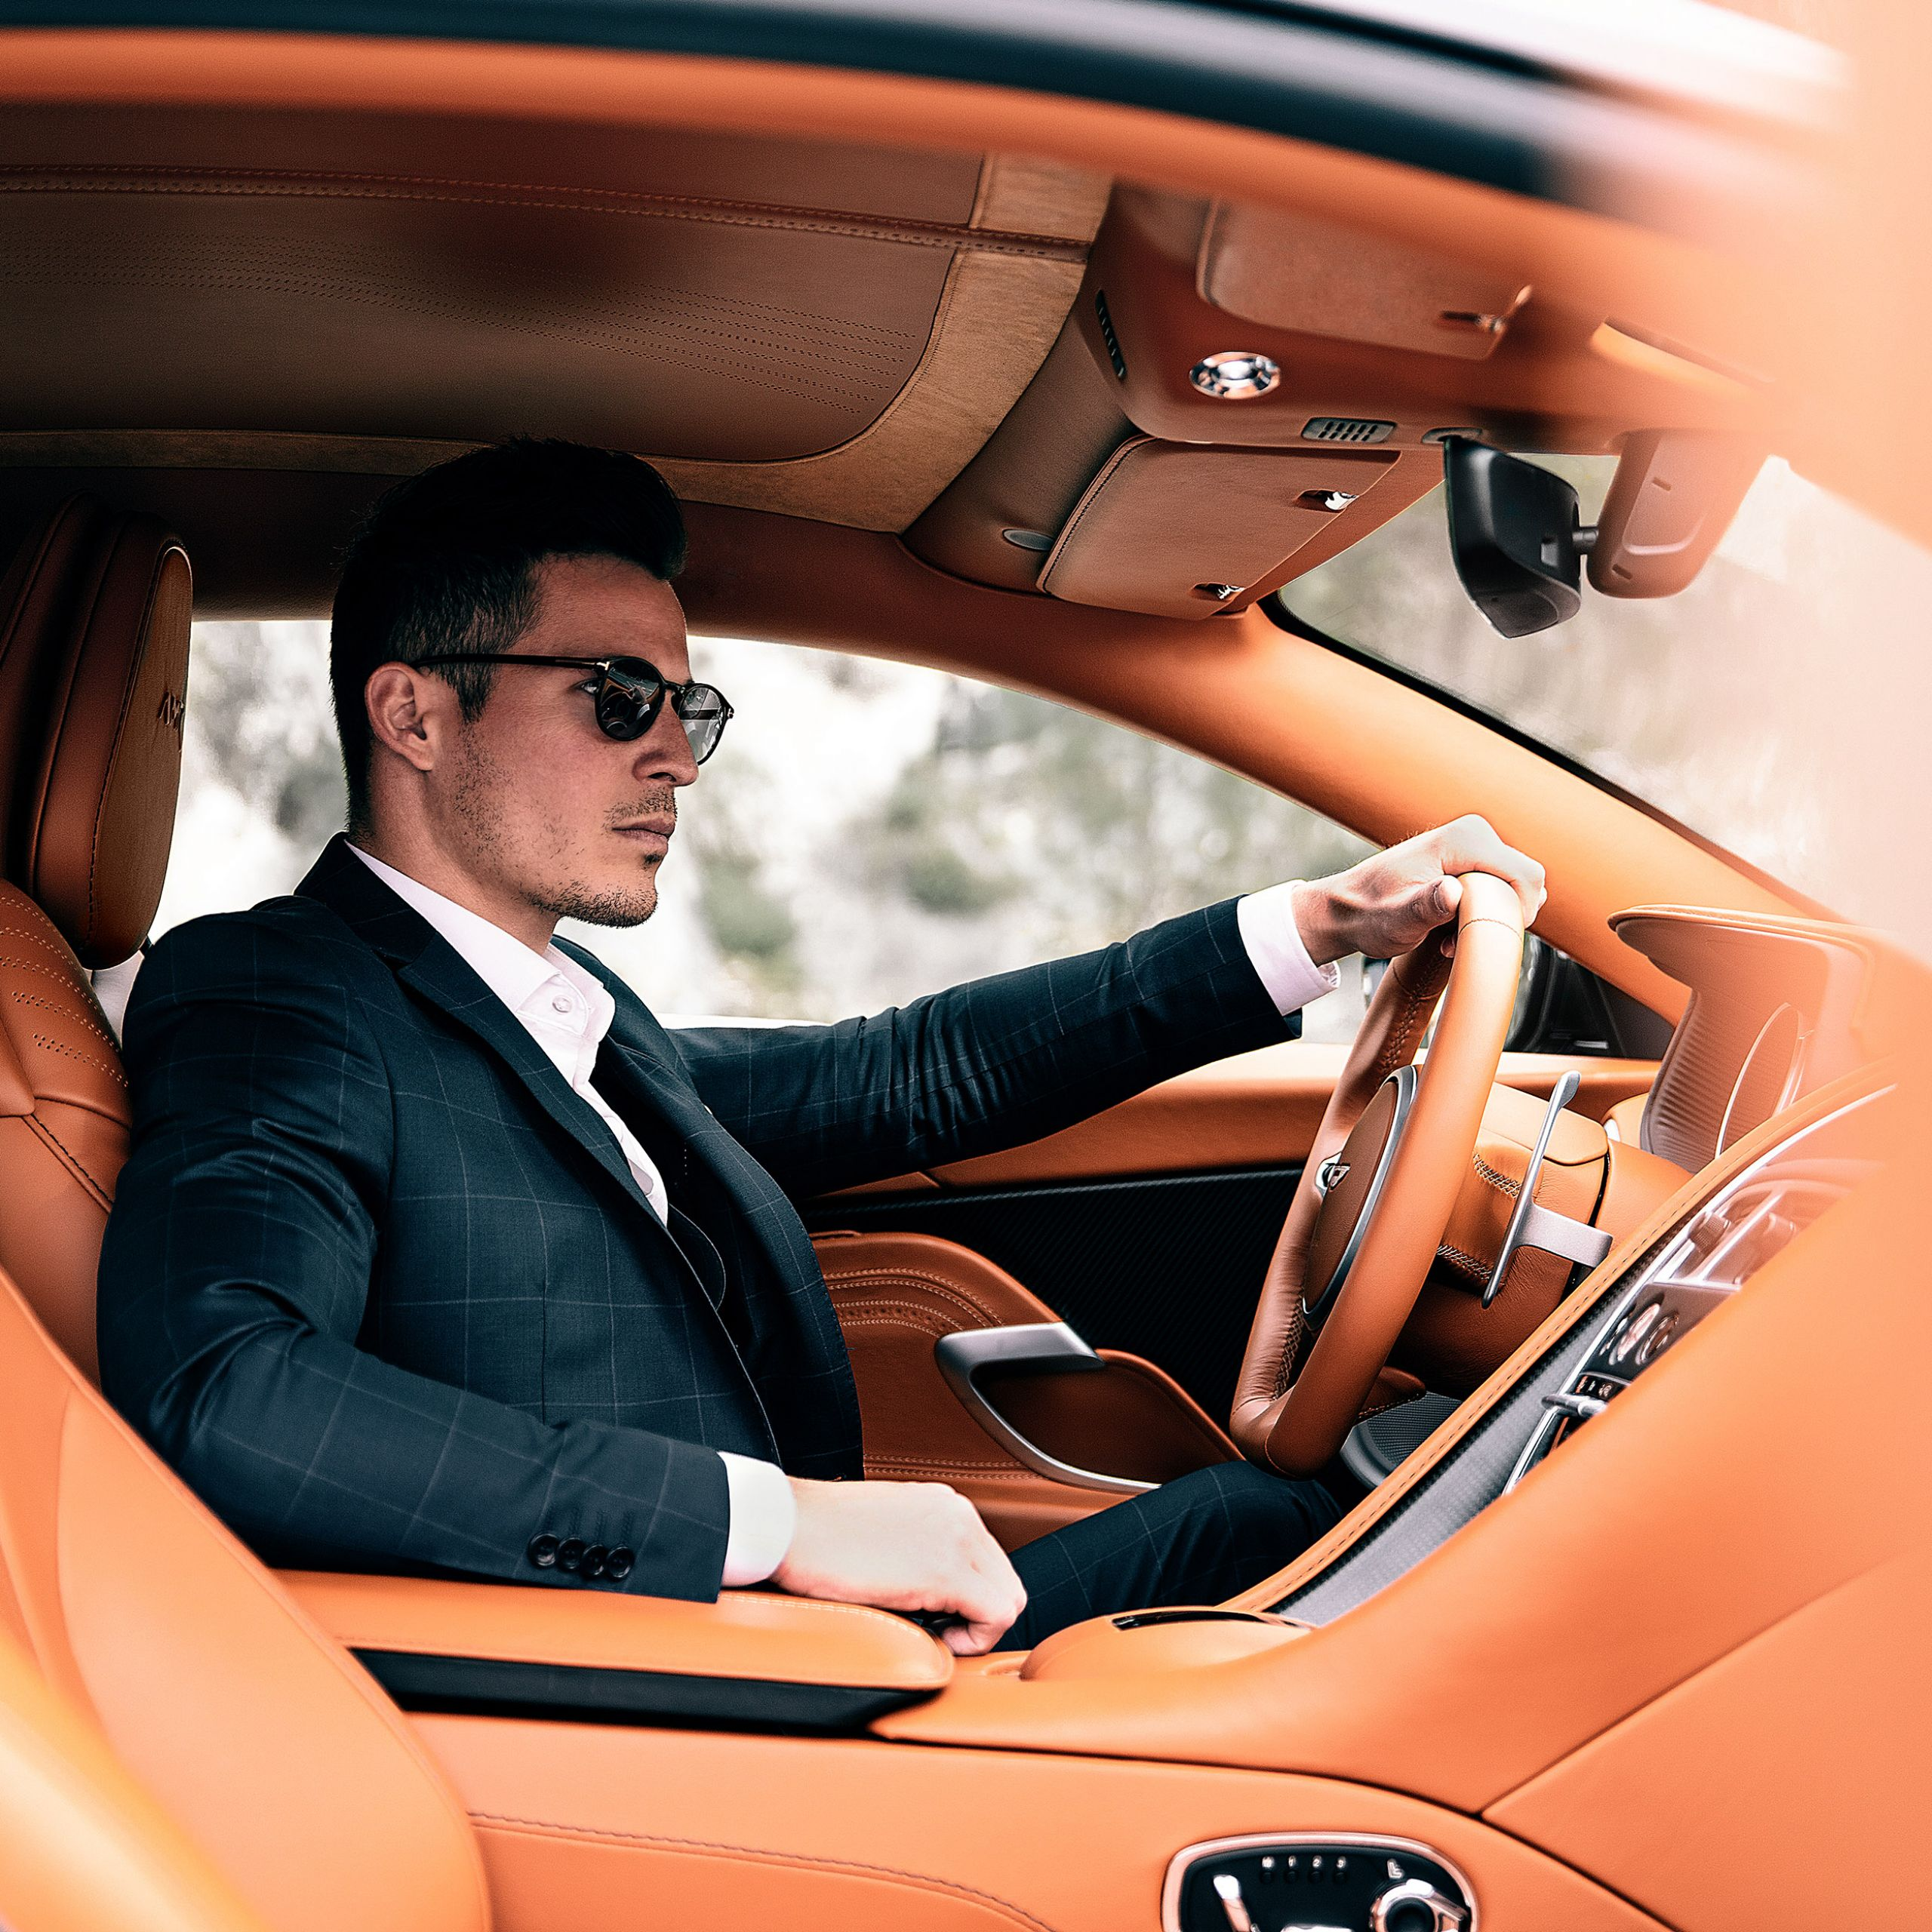 aston martin db11 class suit tom claeren luxury influencer